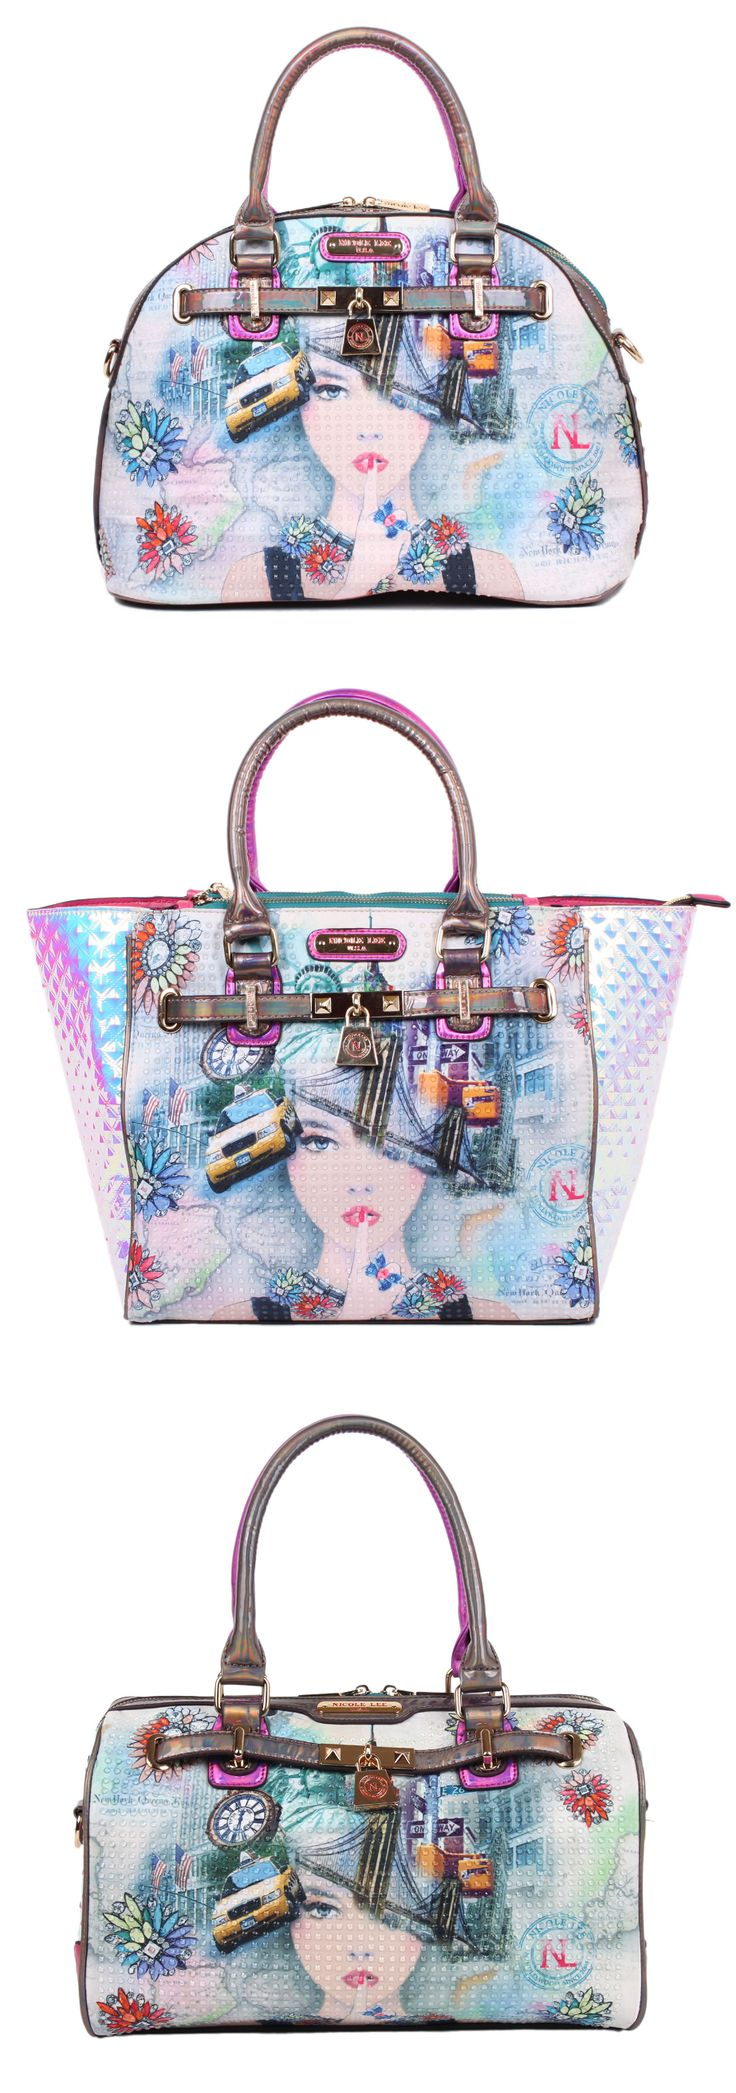 What's your style? A fashionable #satchel bag or a big #tote bag or a cute #bostonbag? Personally.... I WANT 'EM ALL.